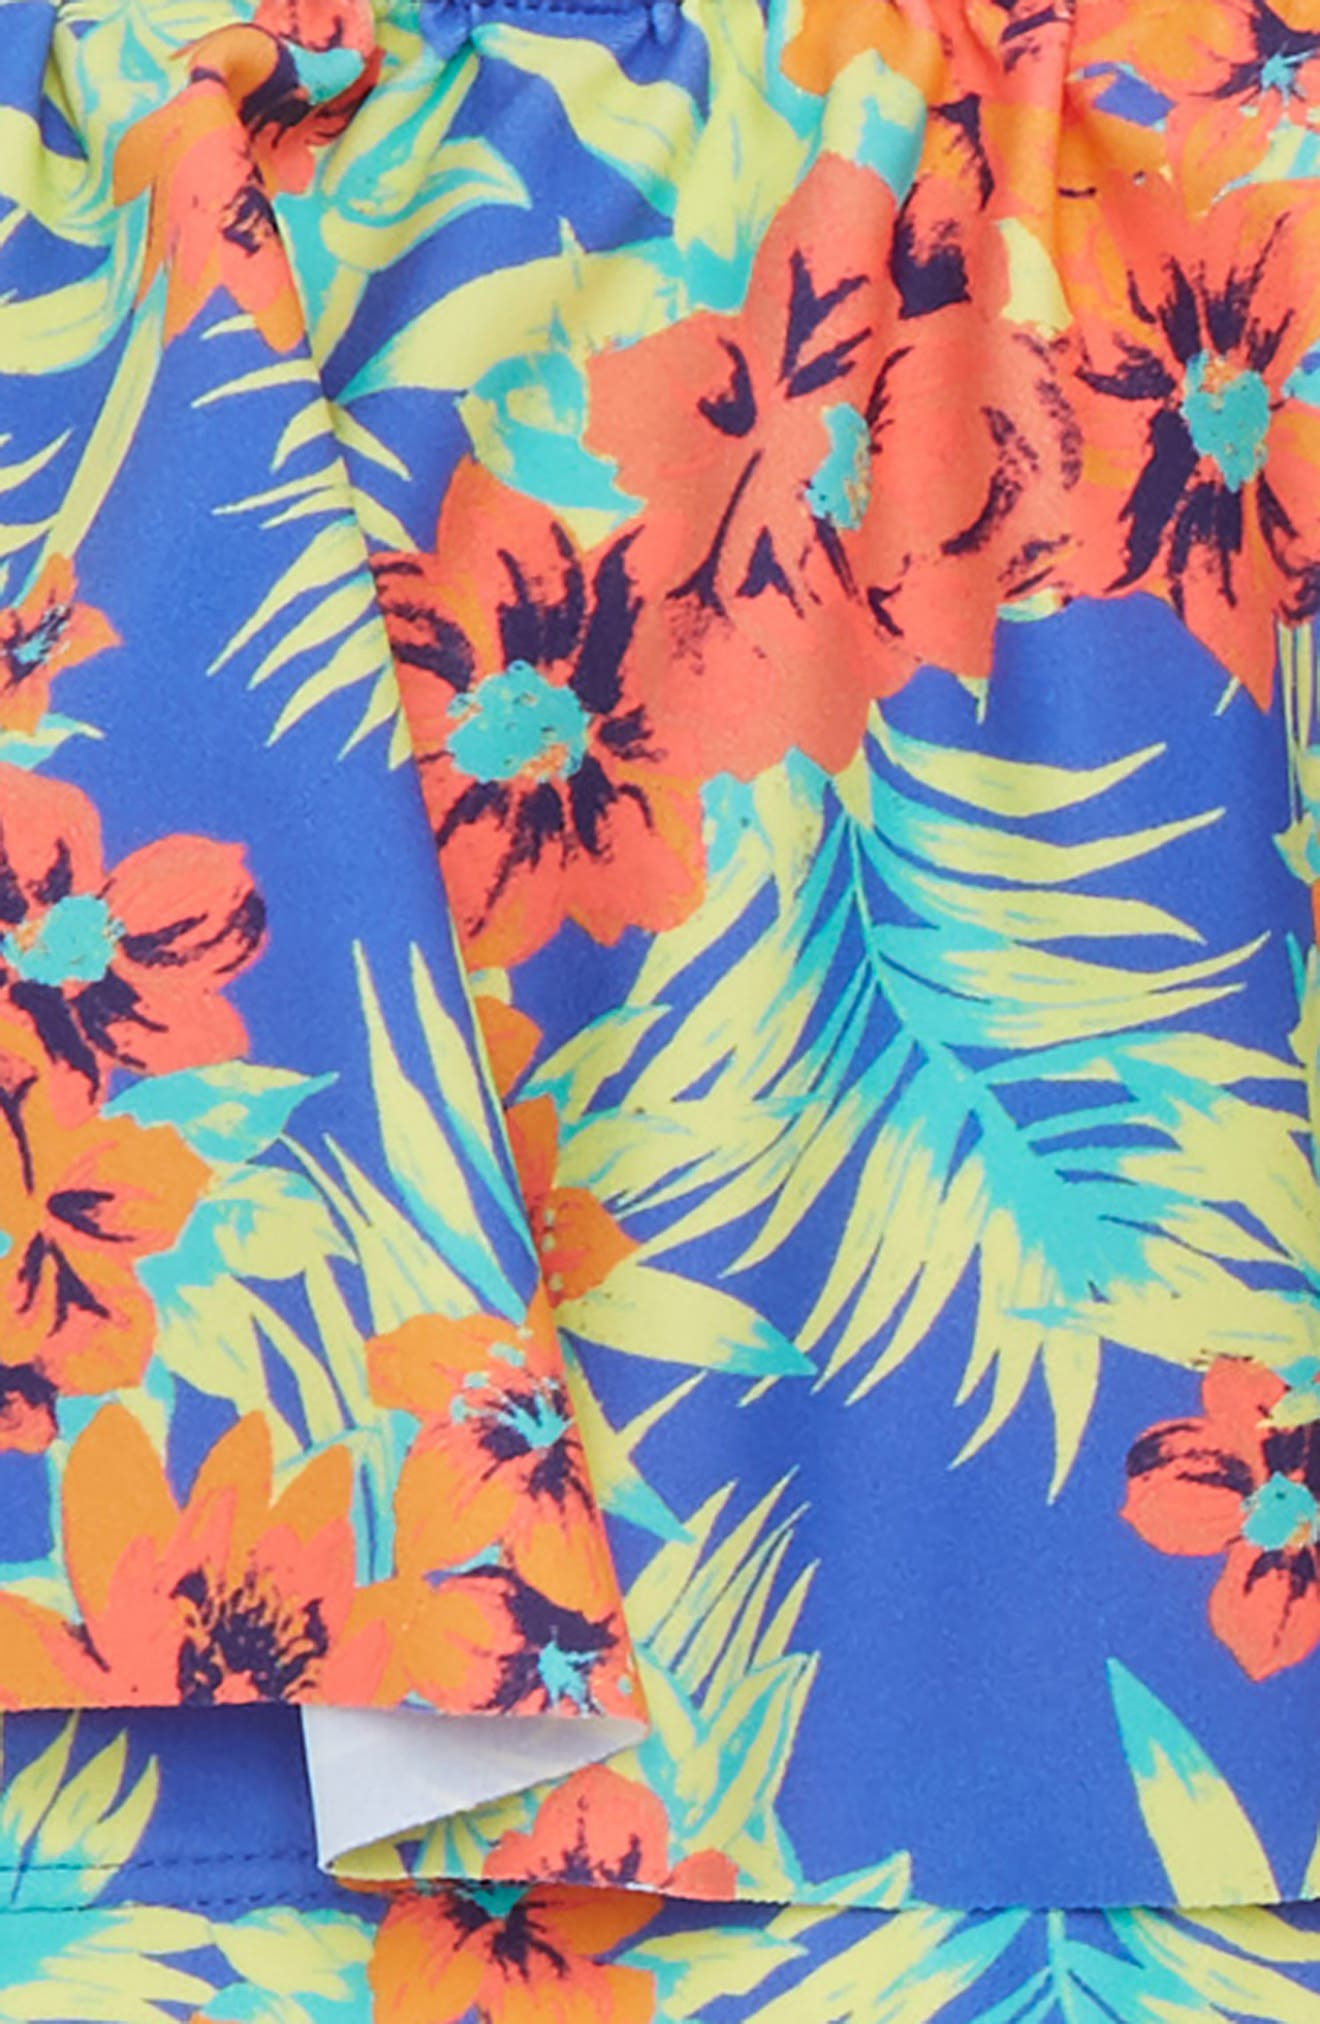 Floral Ruffle Two-Piece Swimsuit,                             Alternate thumbnail 2, color,                             Blue Amparo Tropical Floral